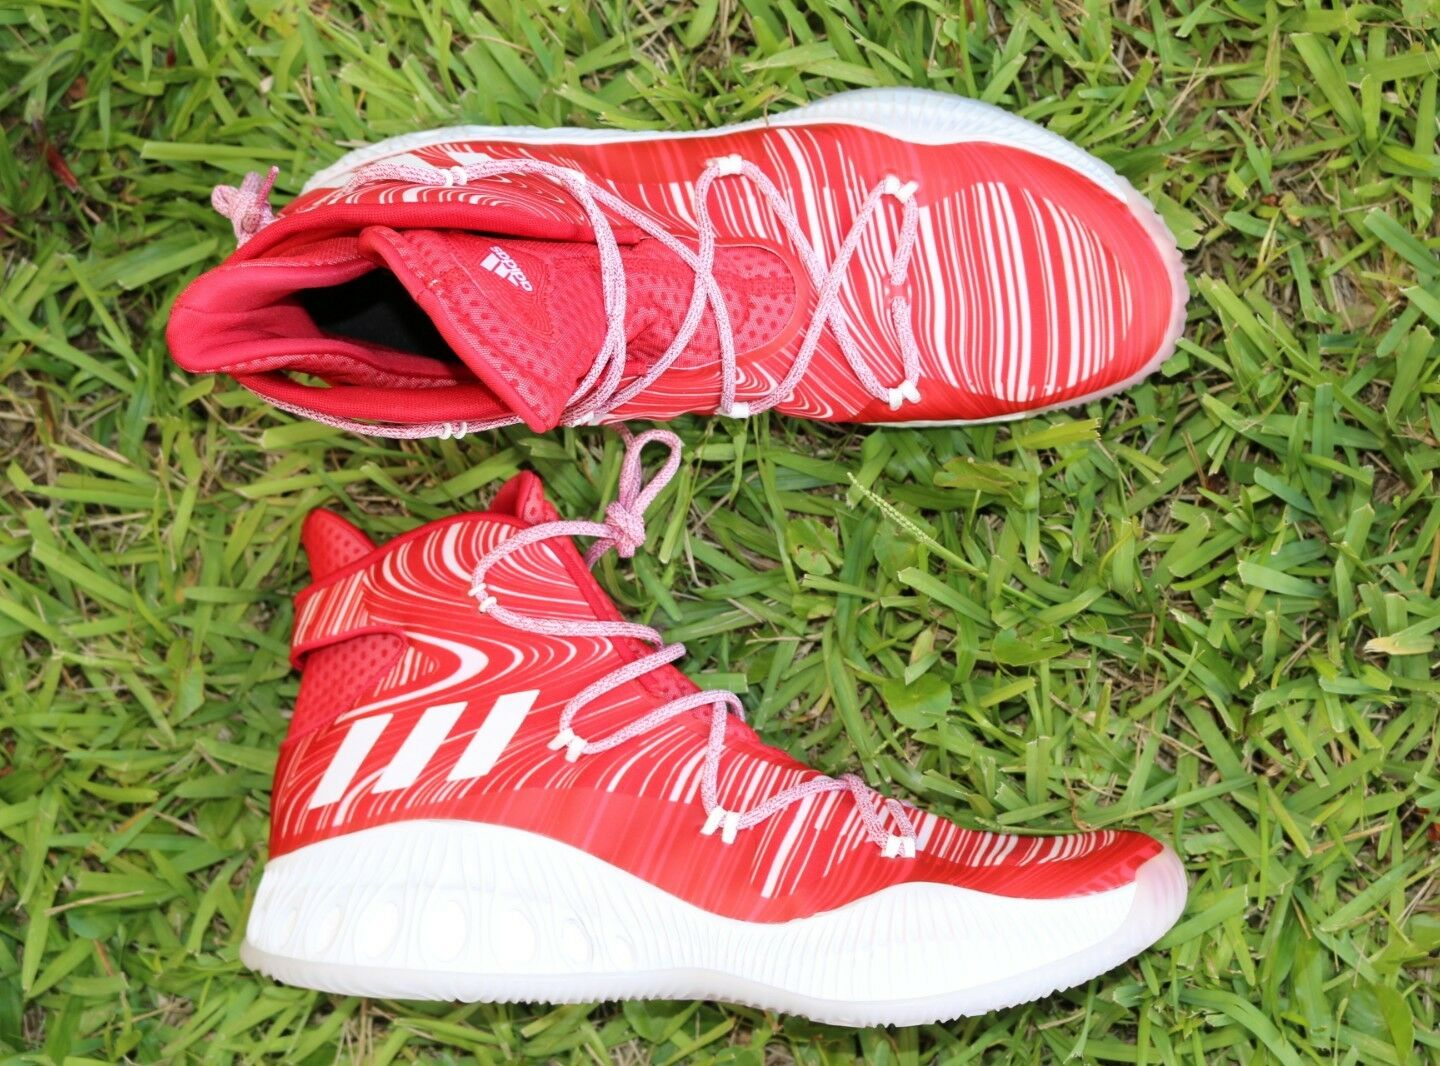 Adidas Crazy Explosive Size Boost White red Mens Size Explosive 19 Basketball Shoe B38854 5def83